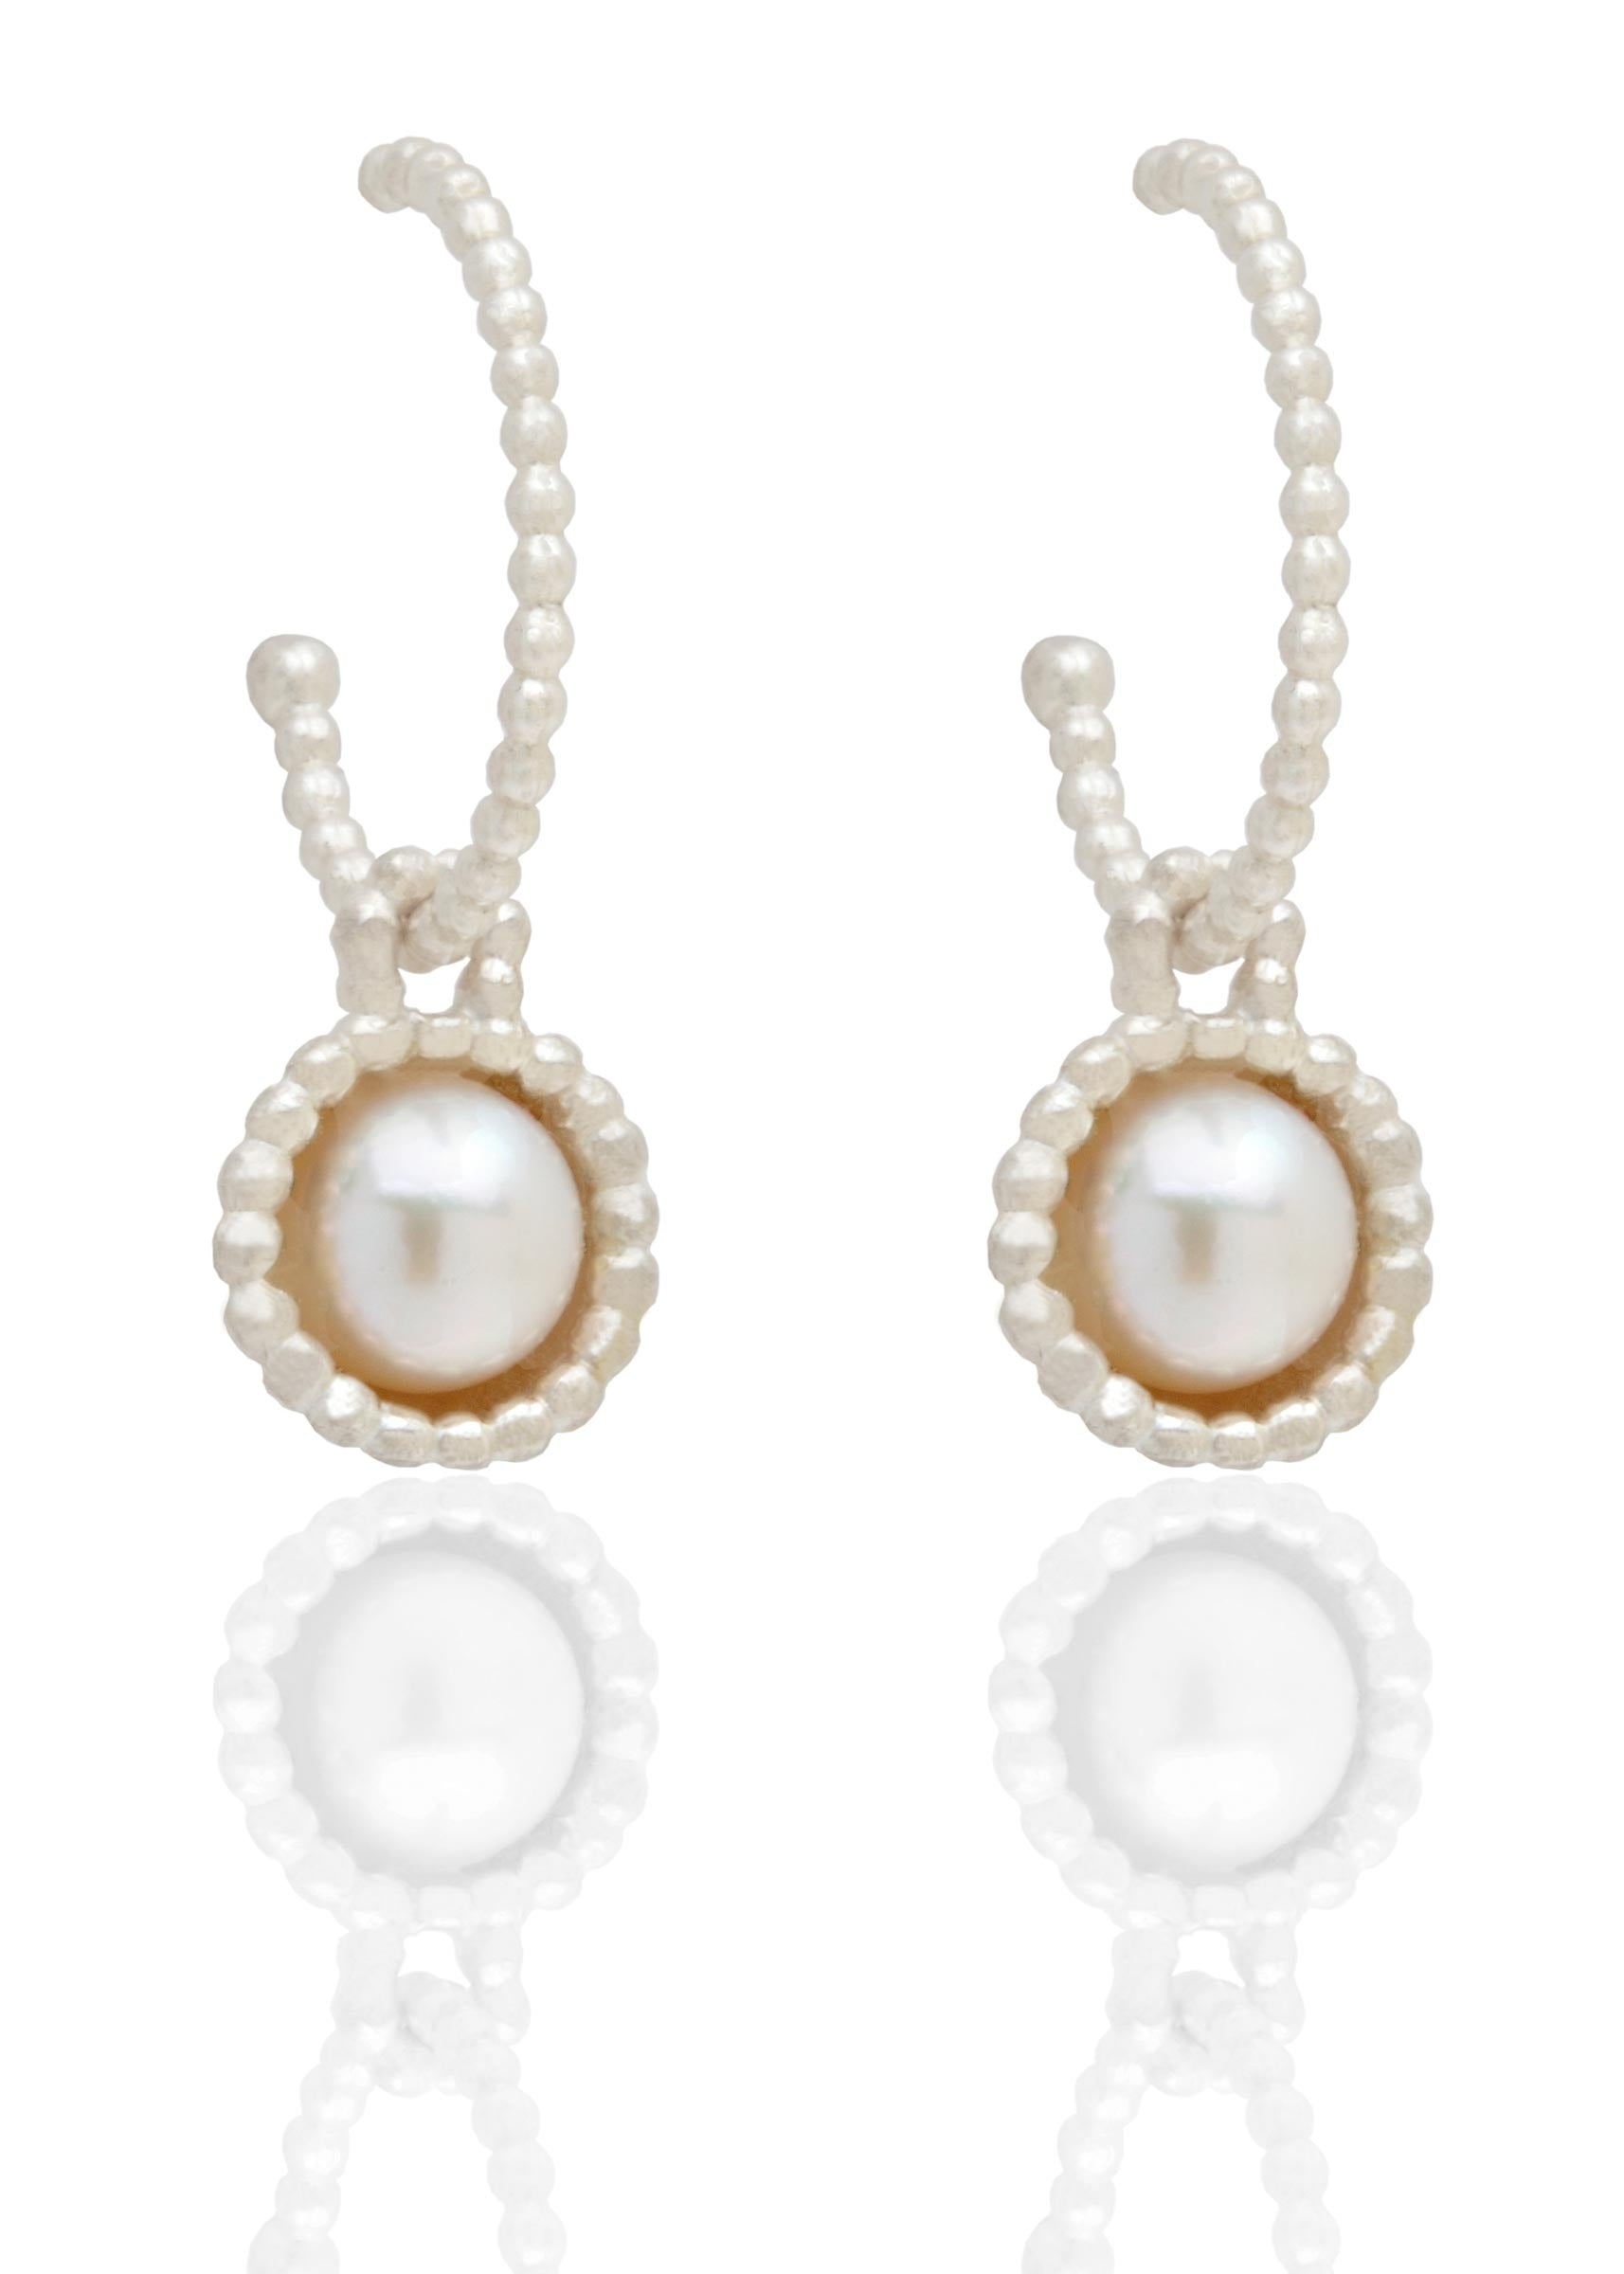 Byzantine silver hooped earrings with ivory pearls